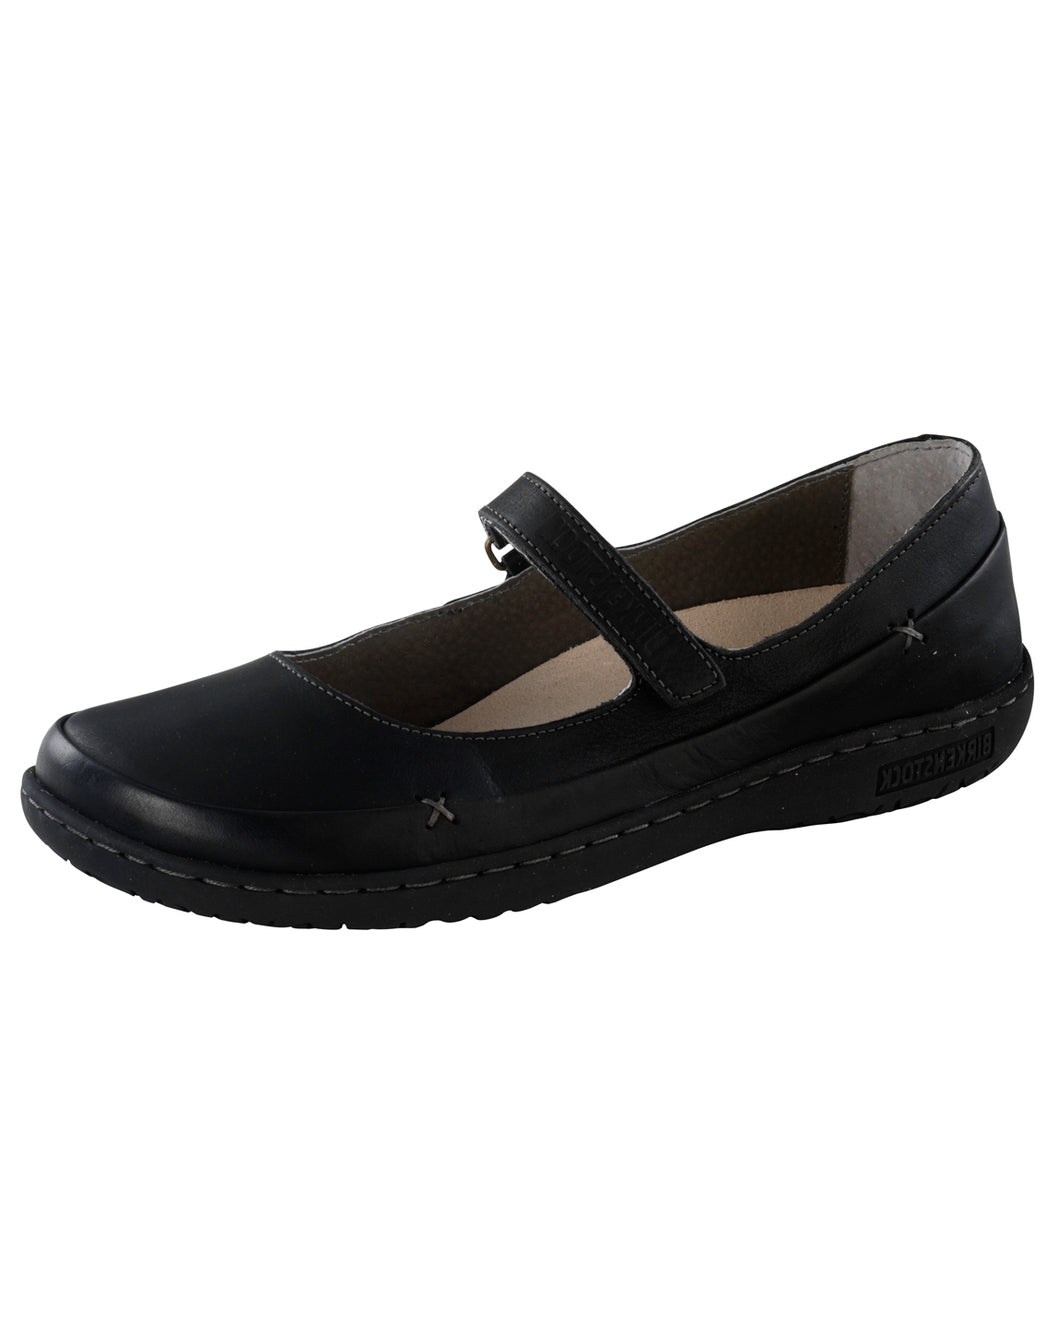 BIRKENSTOCK IONA BLACK NL NARROW